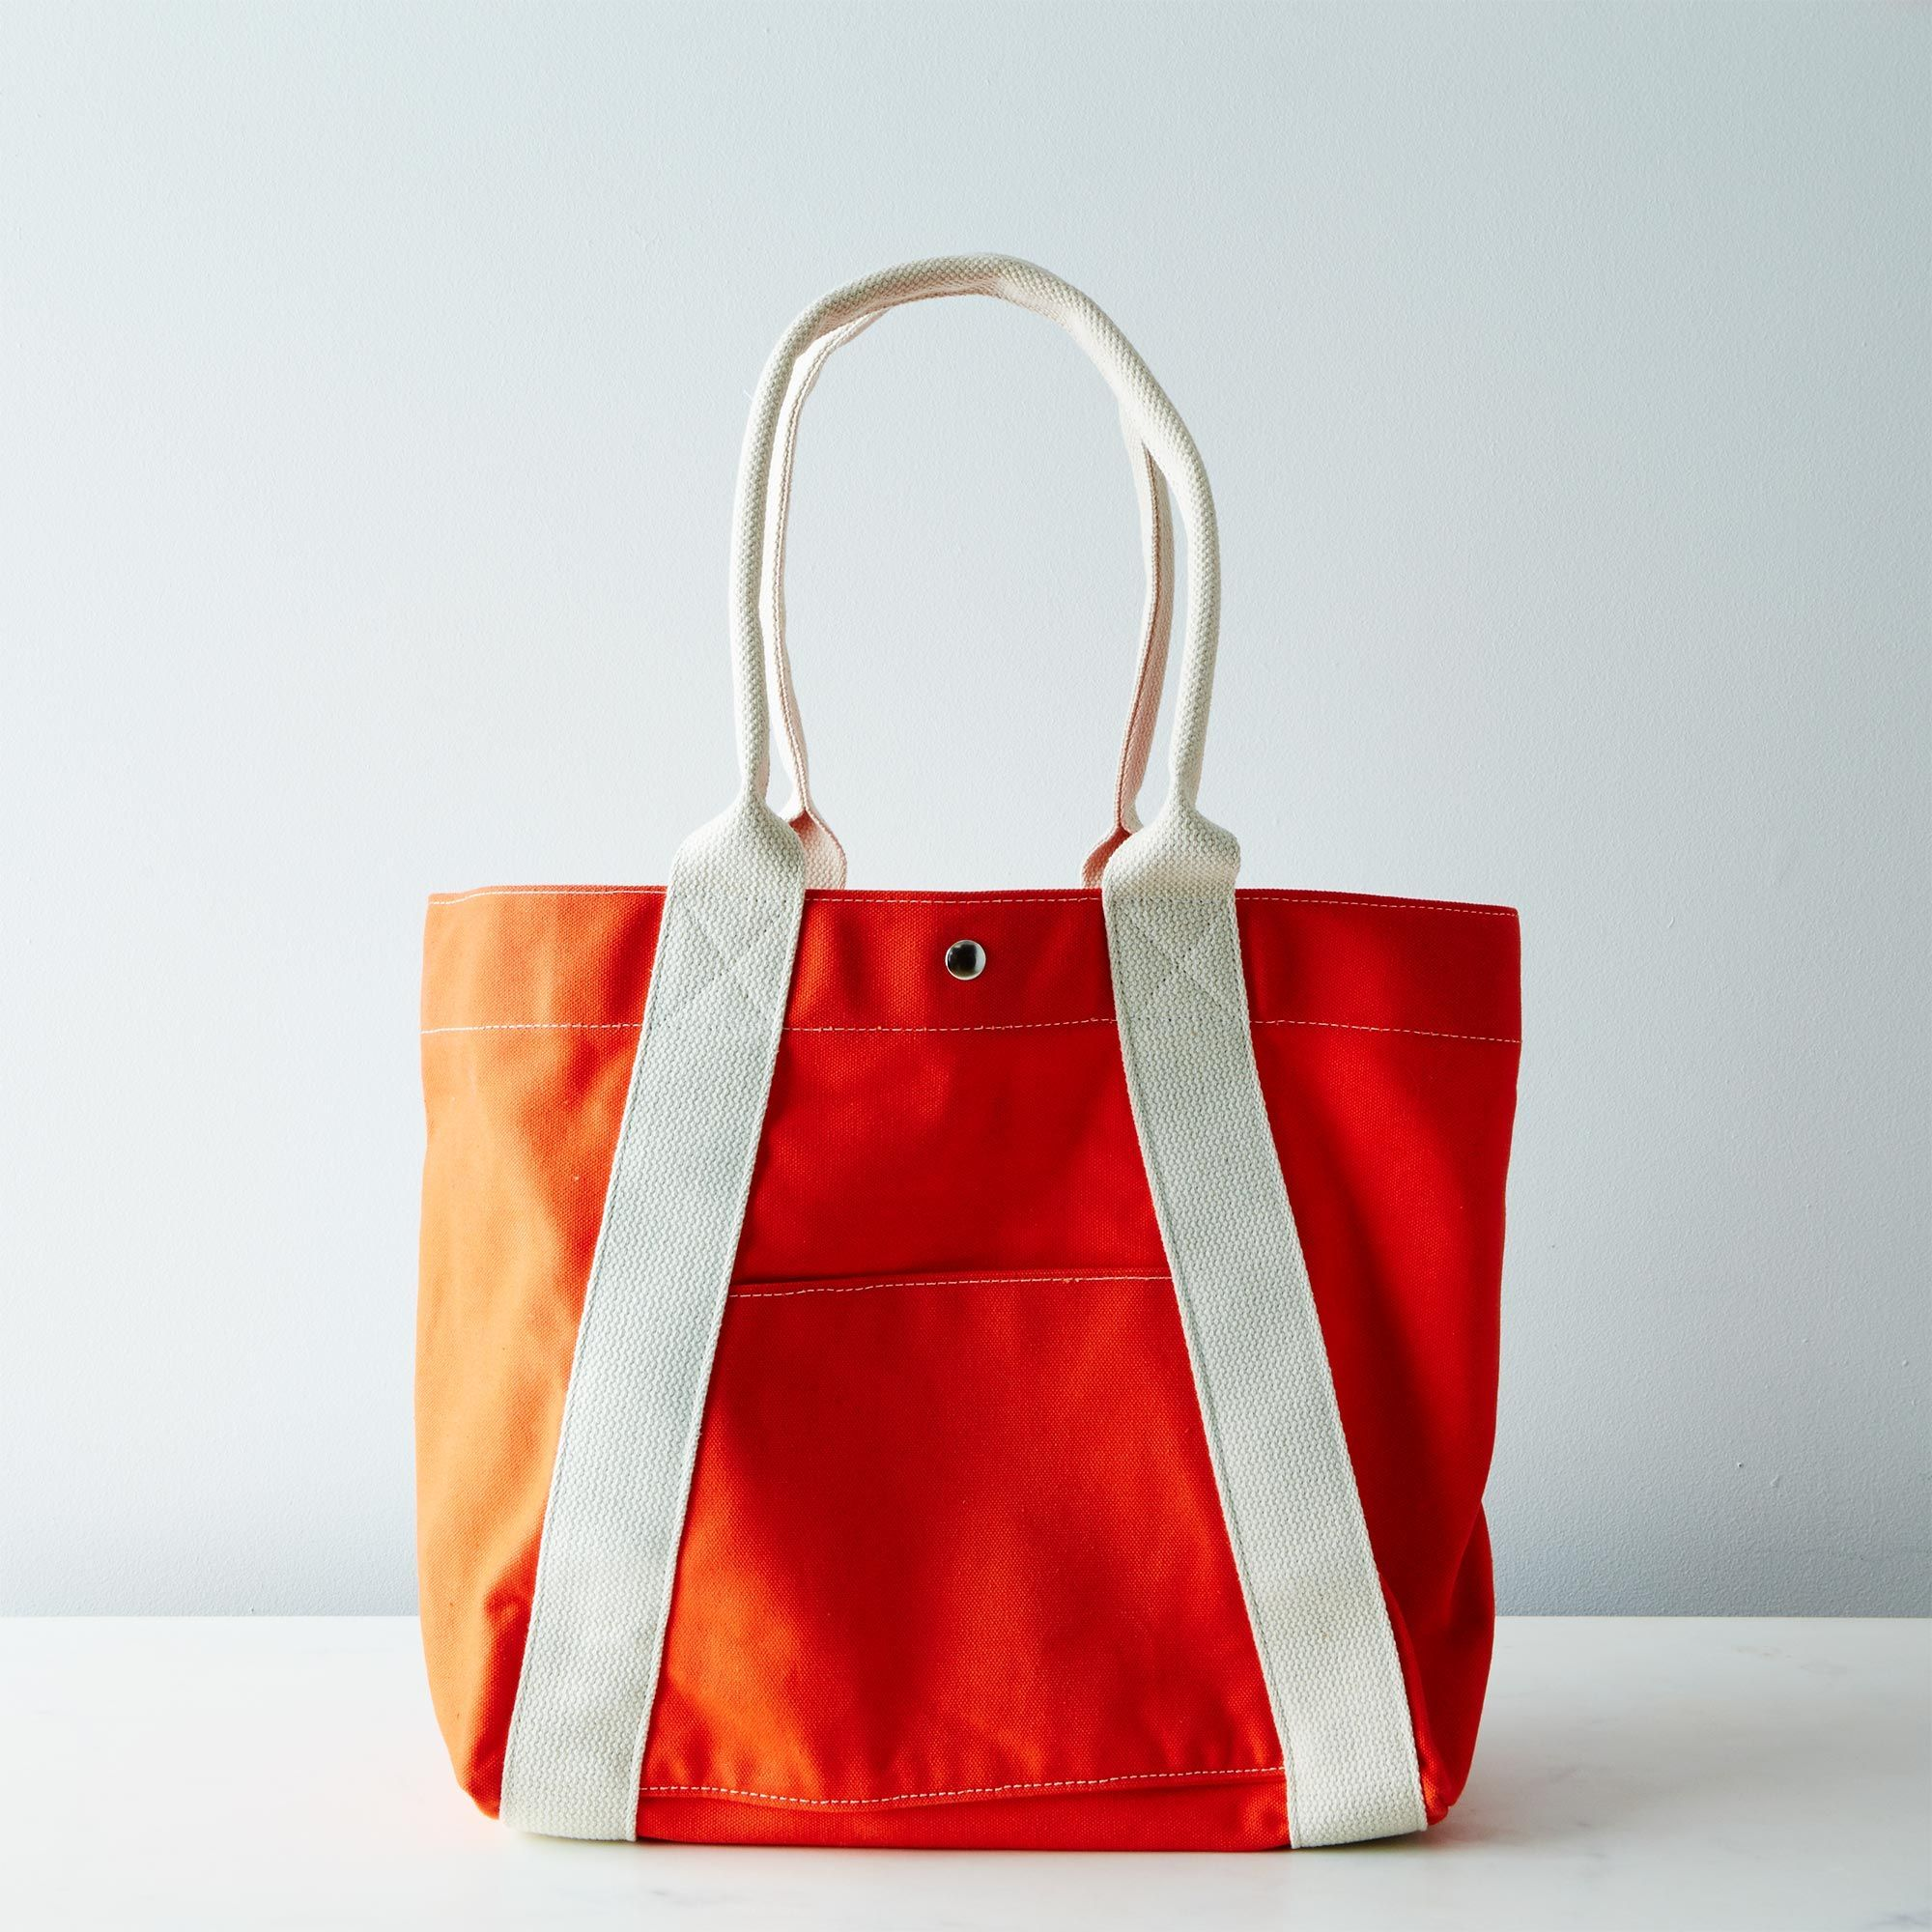 Aac720b0-2274-43b2-bed8-0e4d3370adb9--2014-0331_utility-canvas_a-frame-market-tote-007